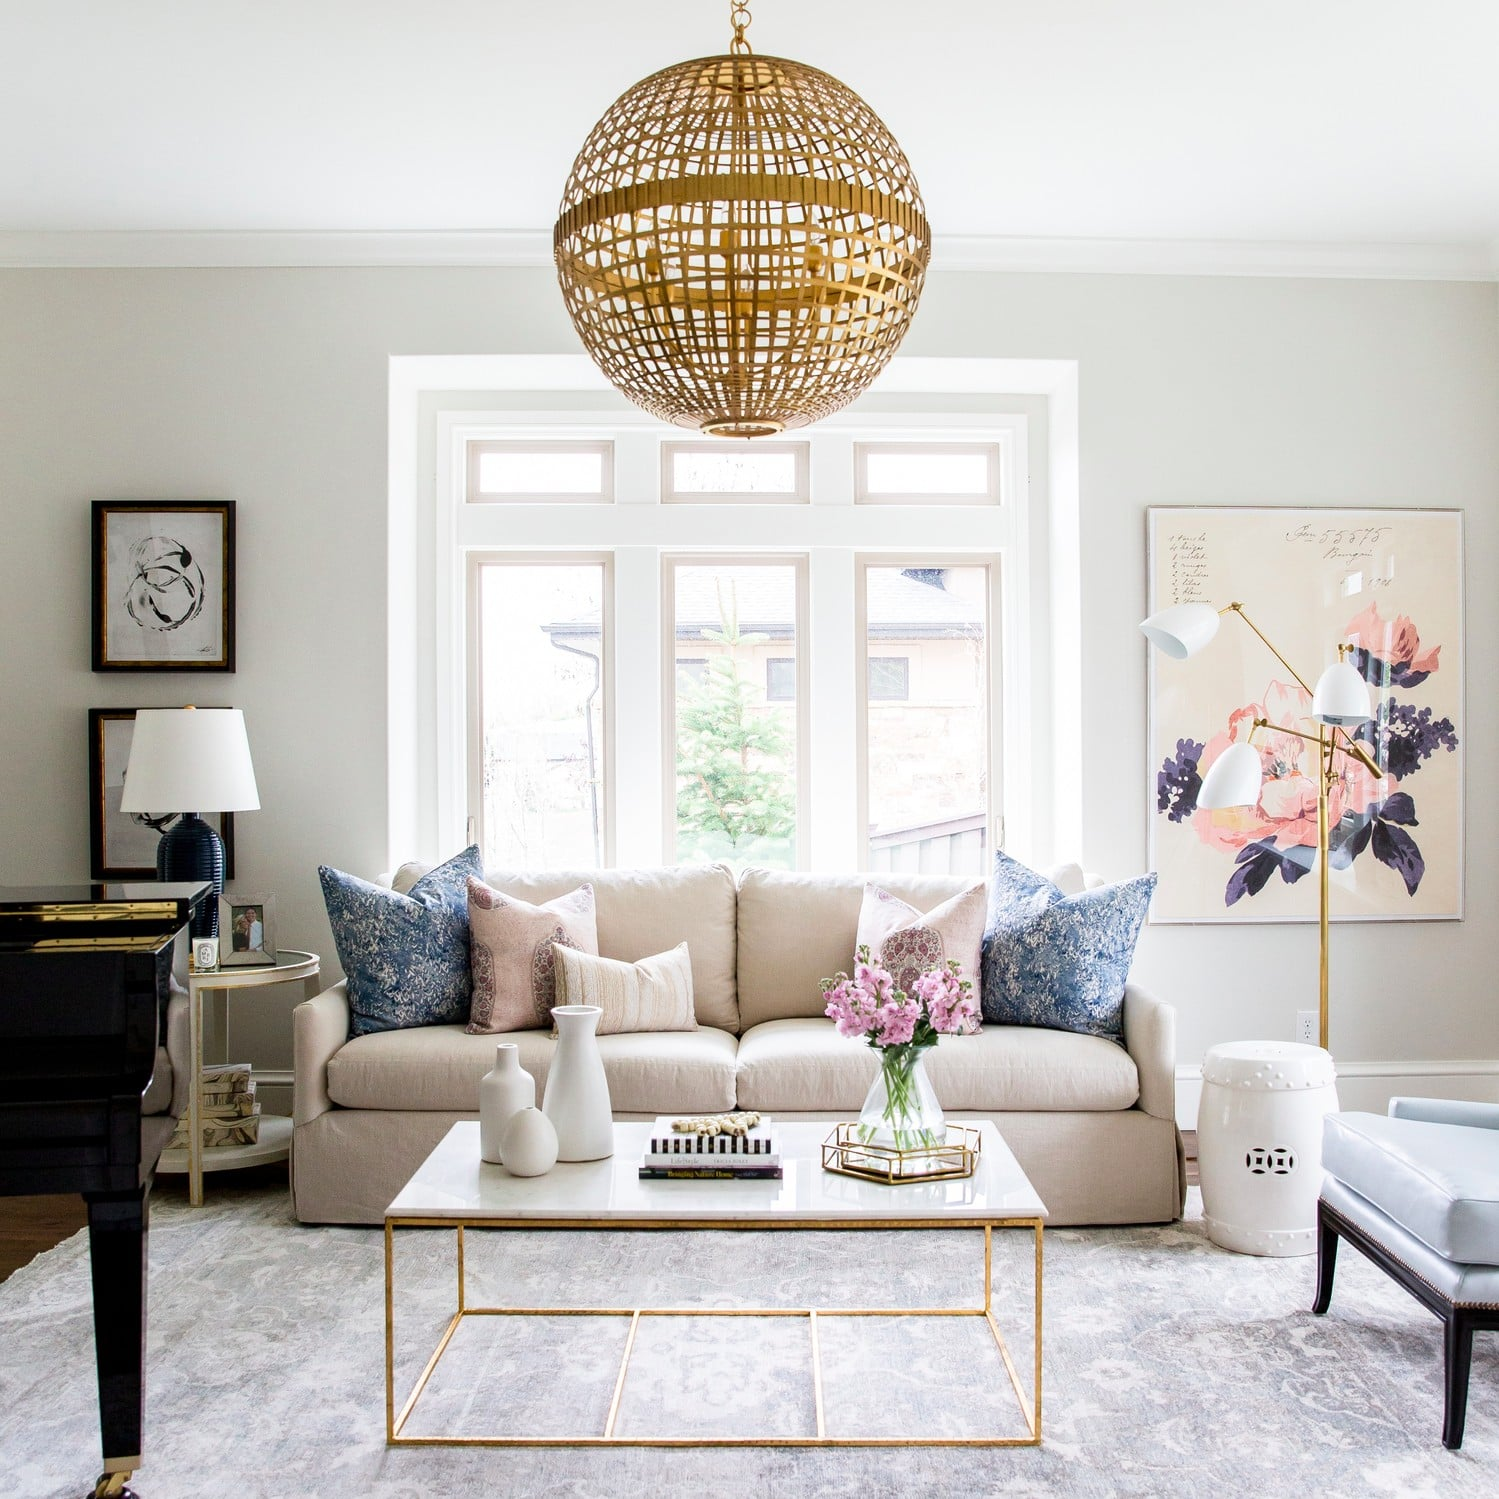 Ideas Living Room Decor In Apartment First apartment decorating ideas popsugar home sisterspd